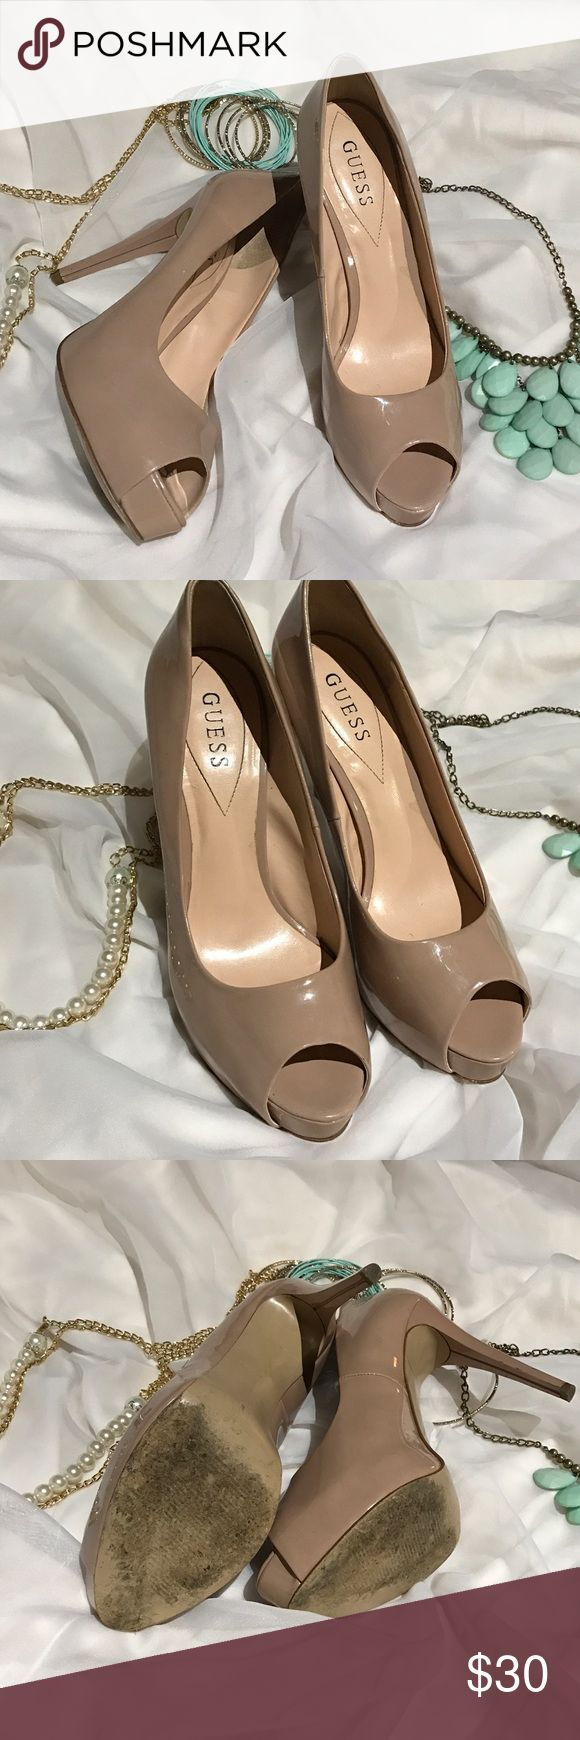 GUESS peep toed heels Great nude colored guess shoes! Previously loved with lots of great wear left! A staple shoe for any fashionista Guess Shoes Heels